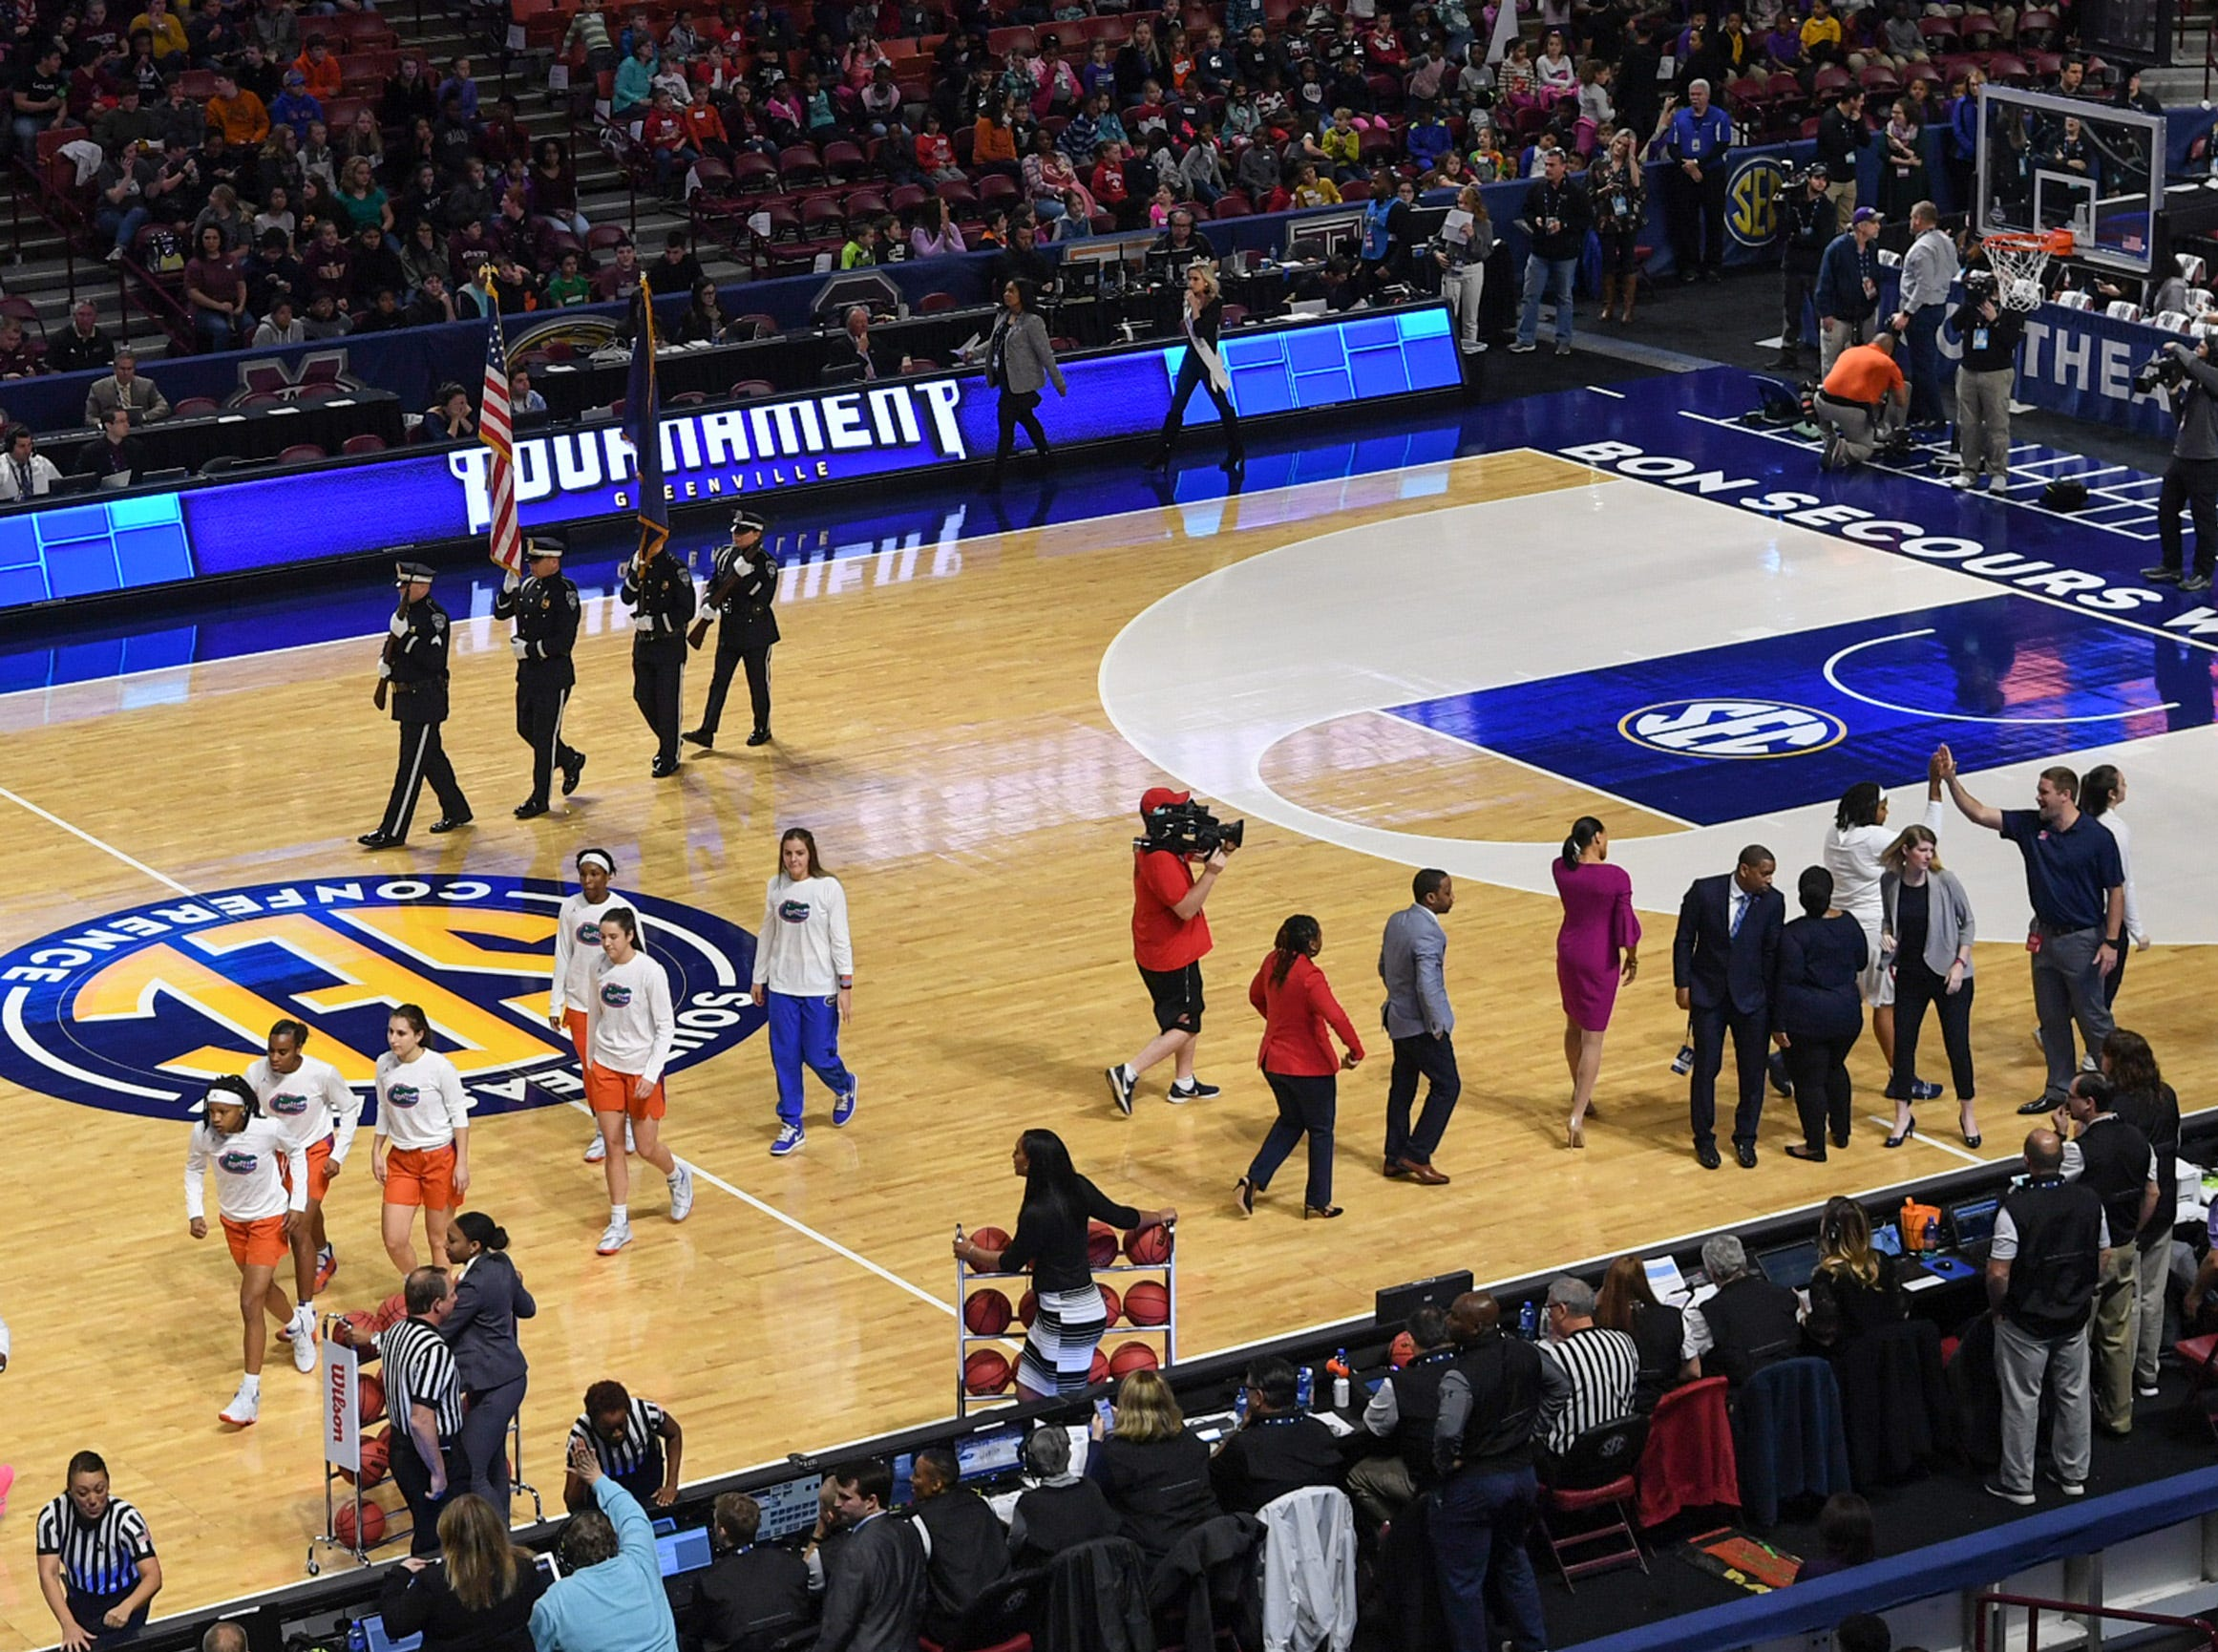 Ole Miss and Florida get ready for tipoff before the first quarter of the Southeastern Conference Women's Tournament game at Bon Secour Wellness Arena in Greenville Wednesday, March 6, 2019.